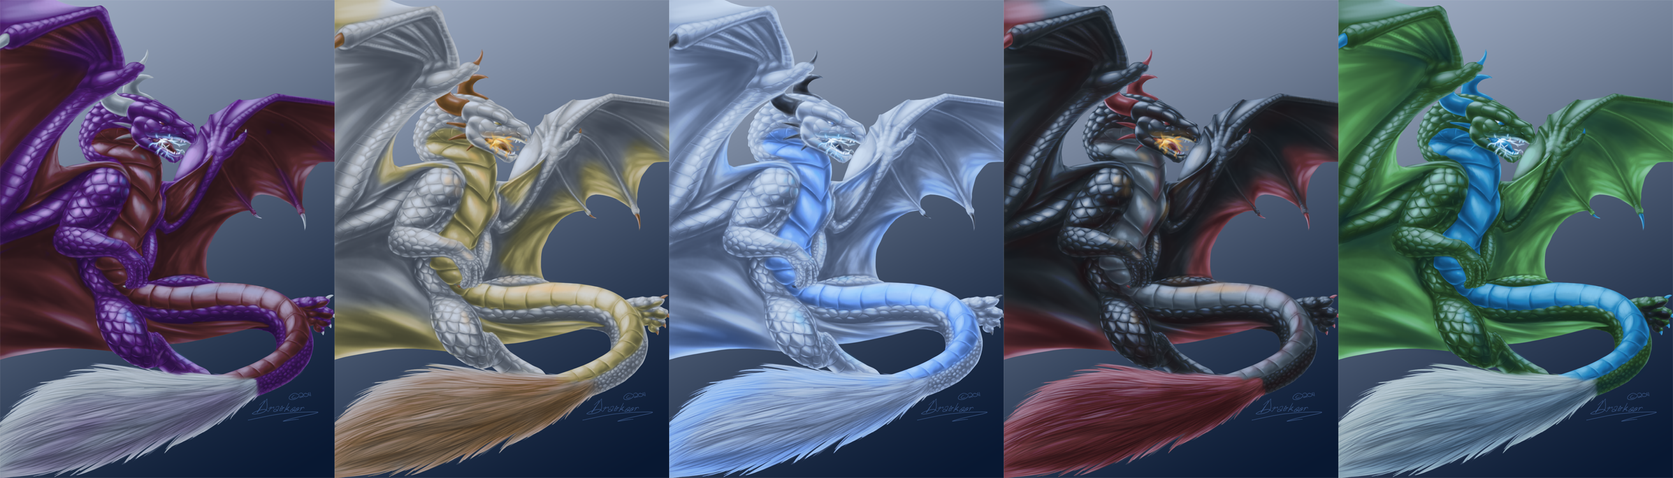 dragon prints collage for fe by draconigenae666 on deviantart